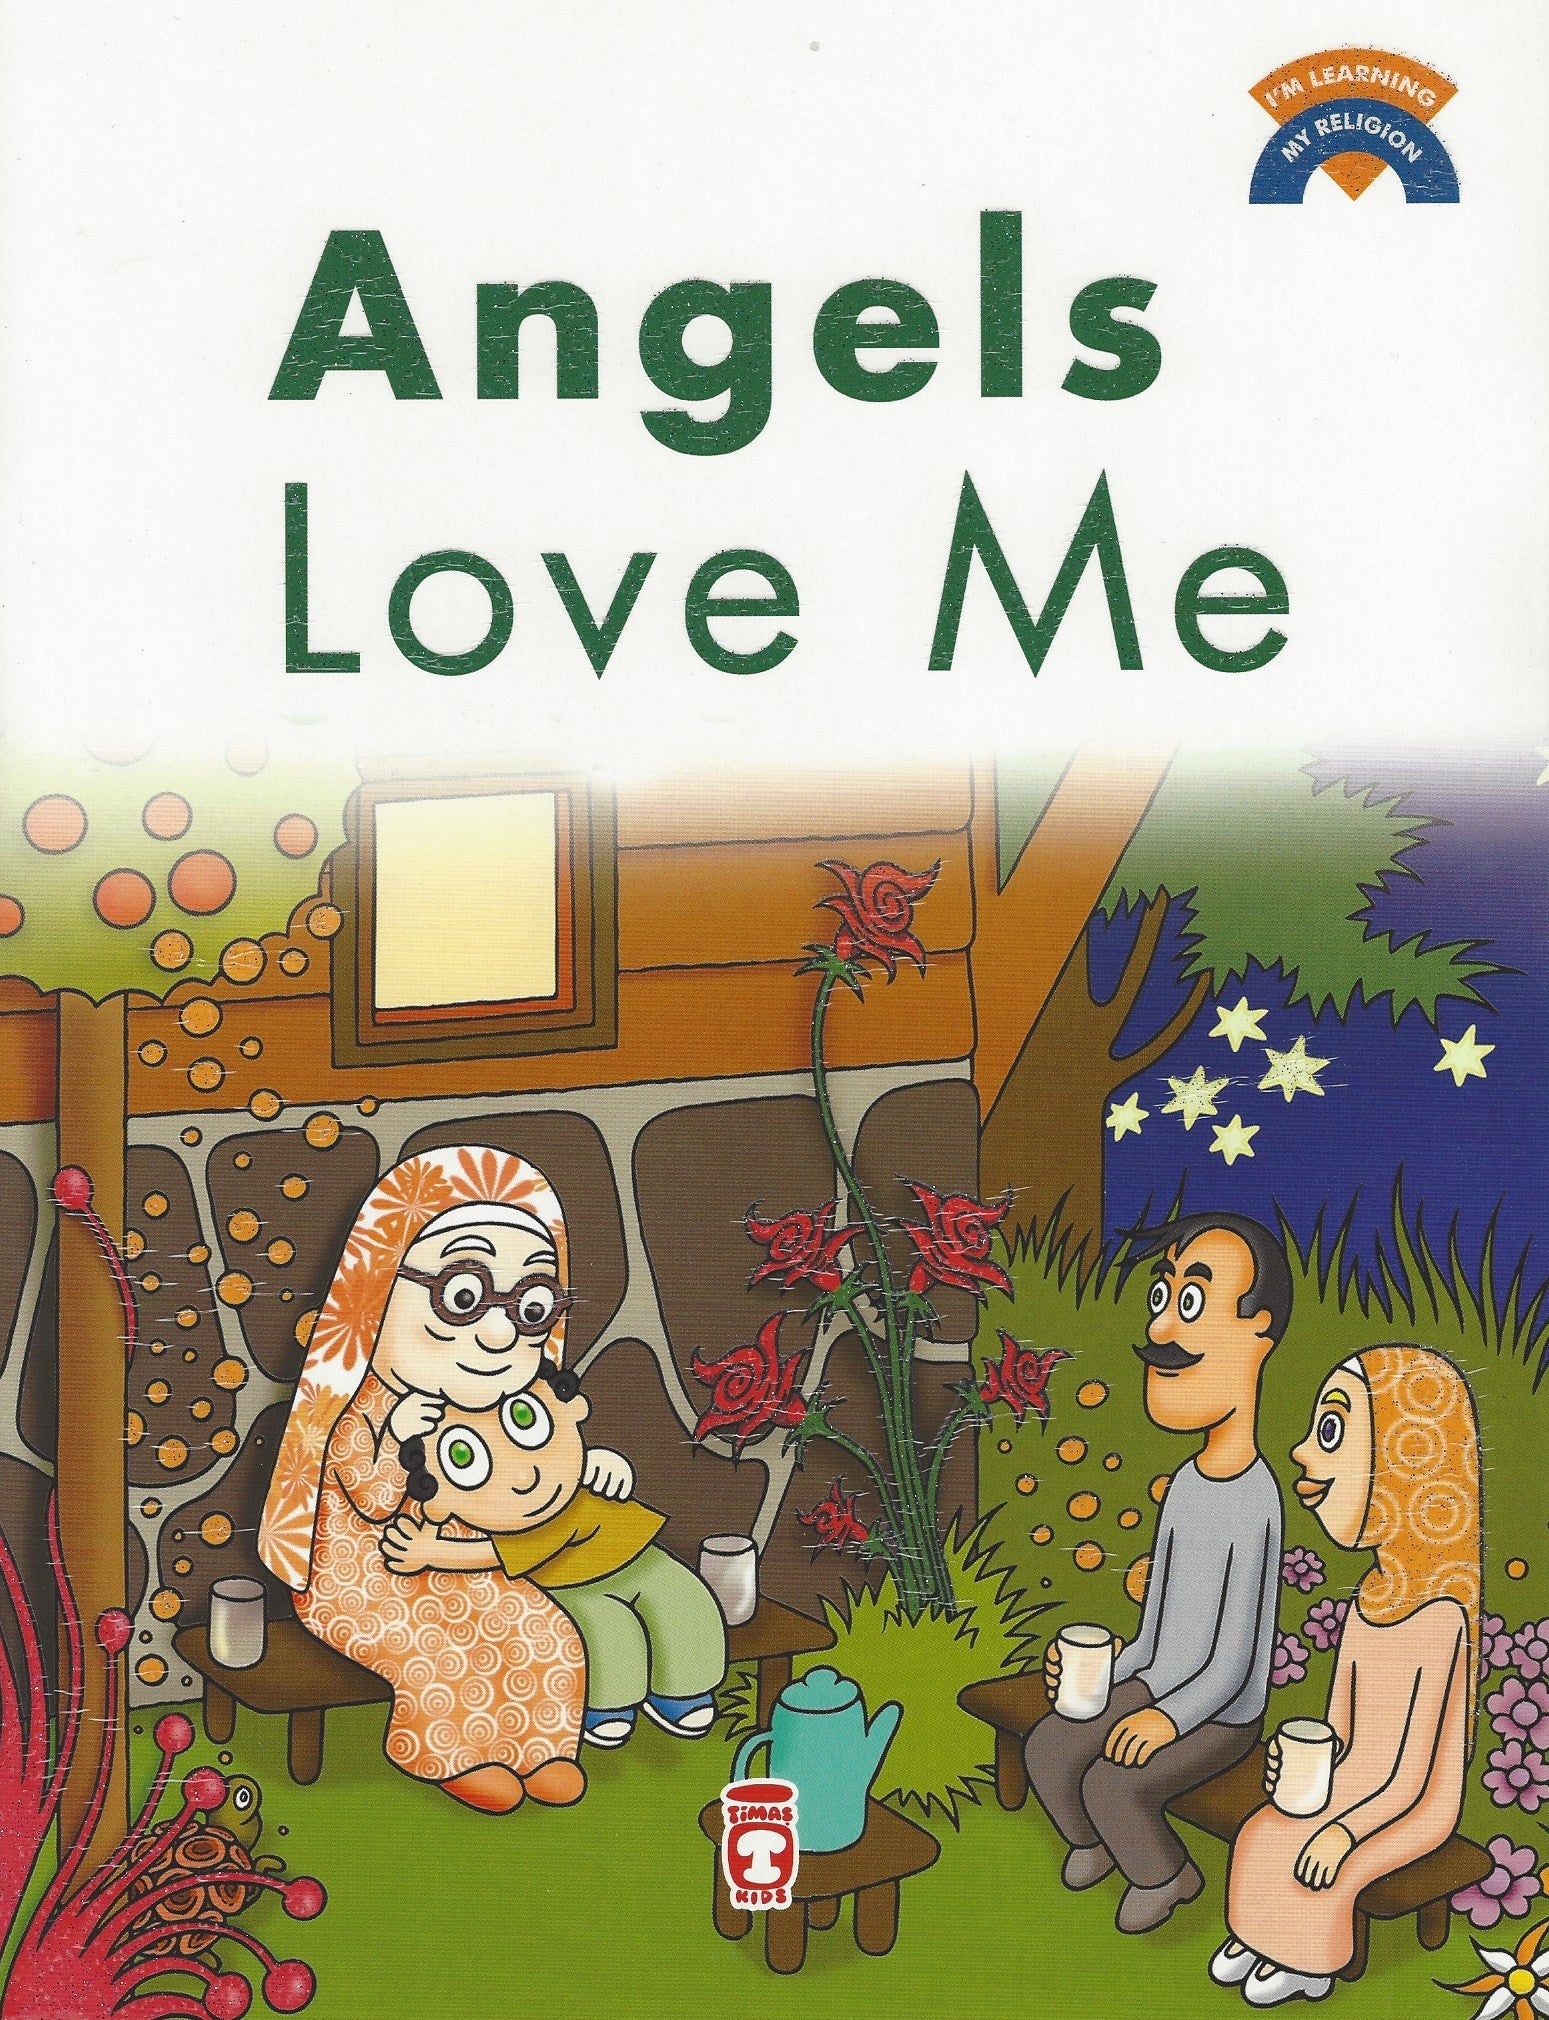 I'm Learning My Religion (10 volume set) Angels Love Me, Book - Daybreak International Bookstore, Daybreak Press Global Bookshop  - 2